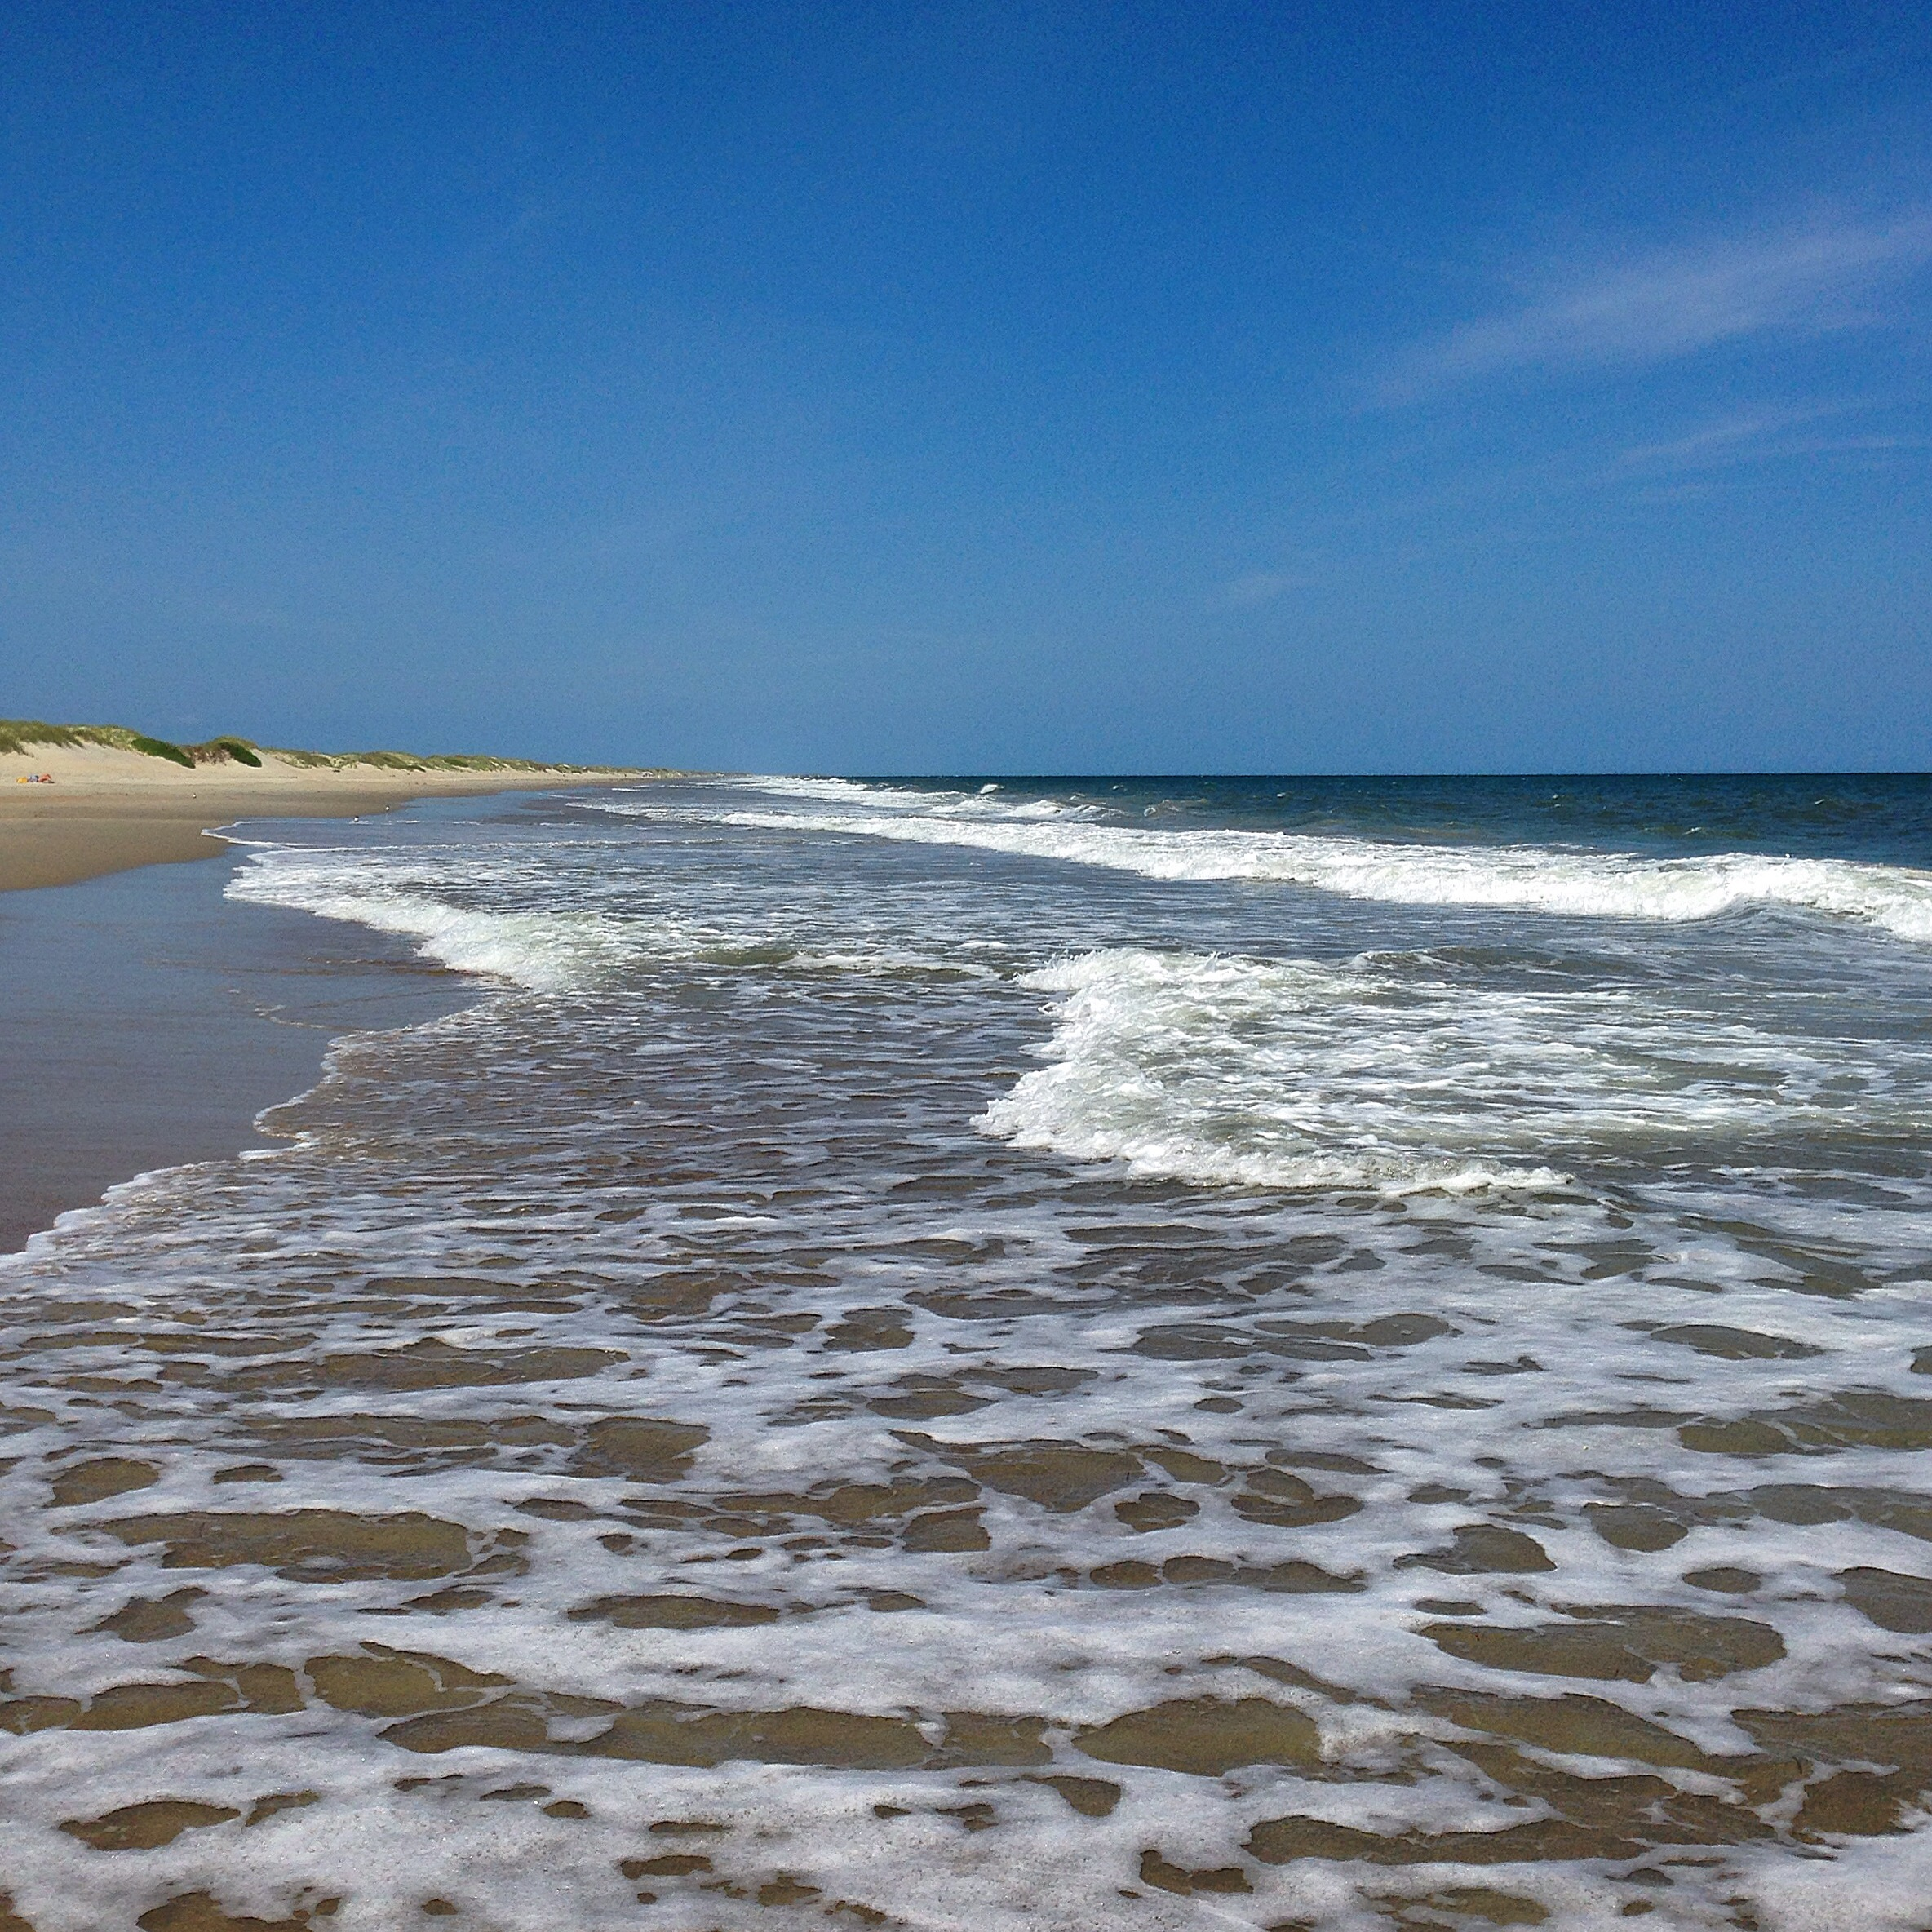 Hatteras Island: Things To Do In The Outer Banks: Hatteras Island